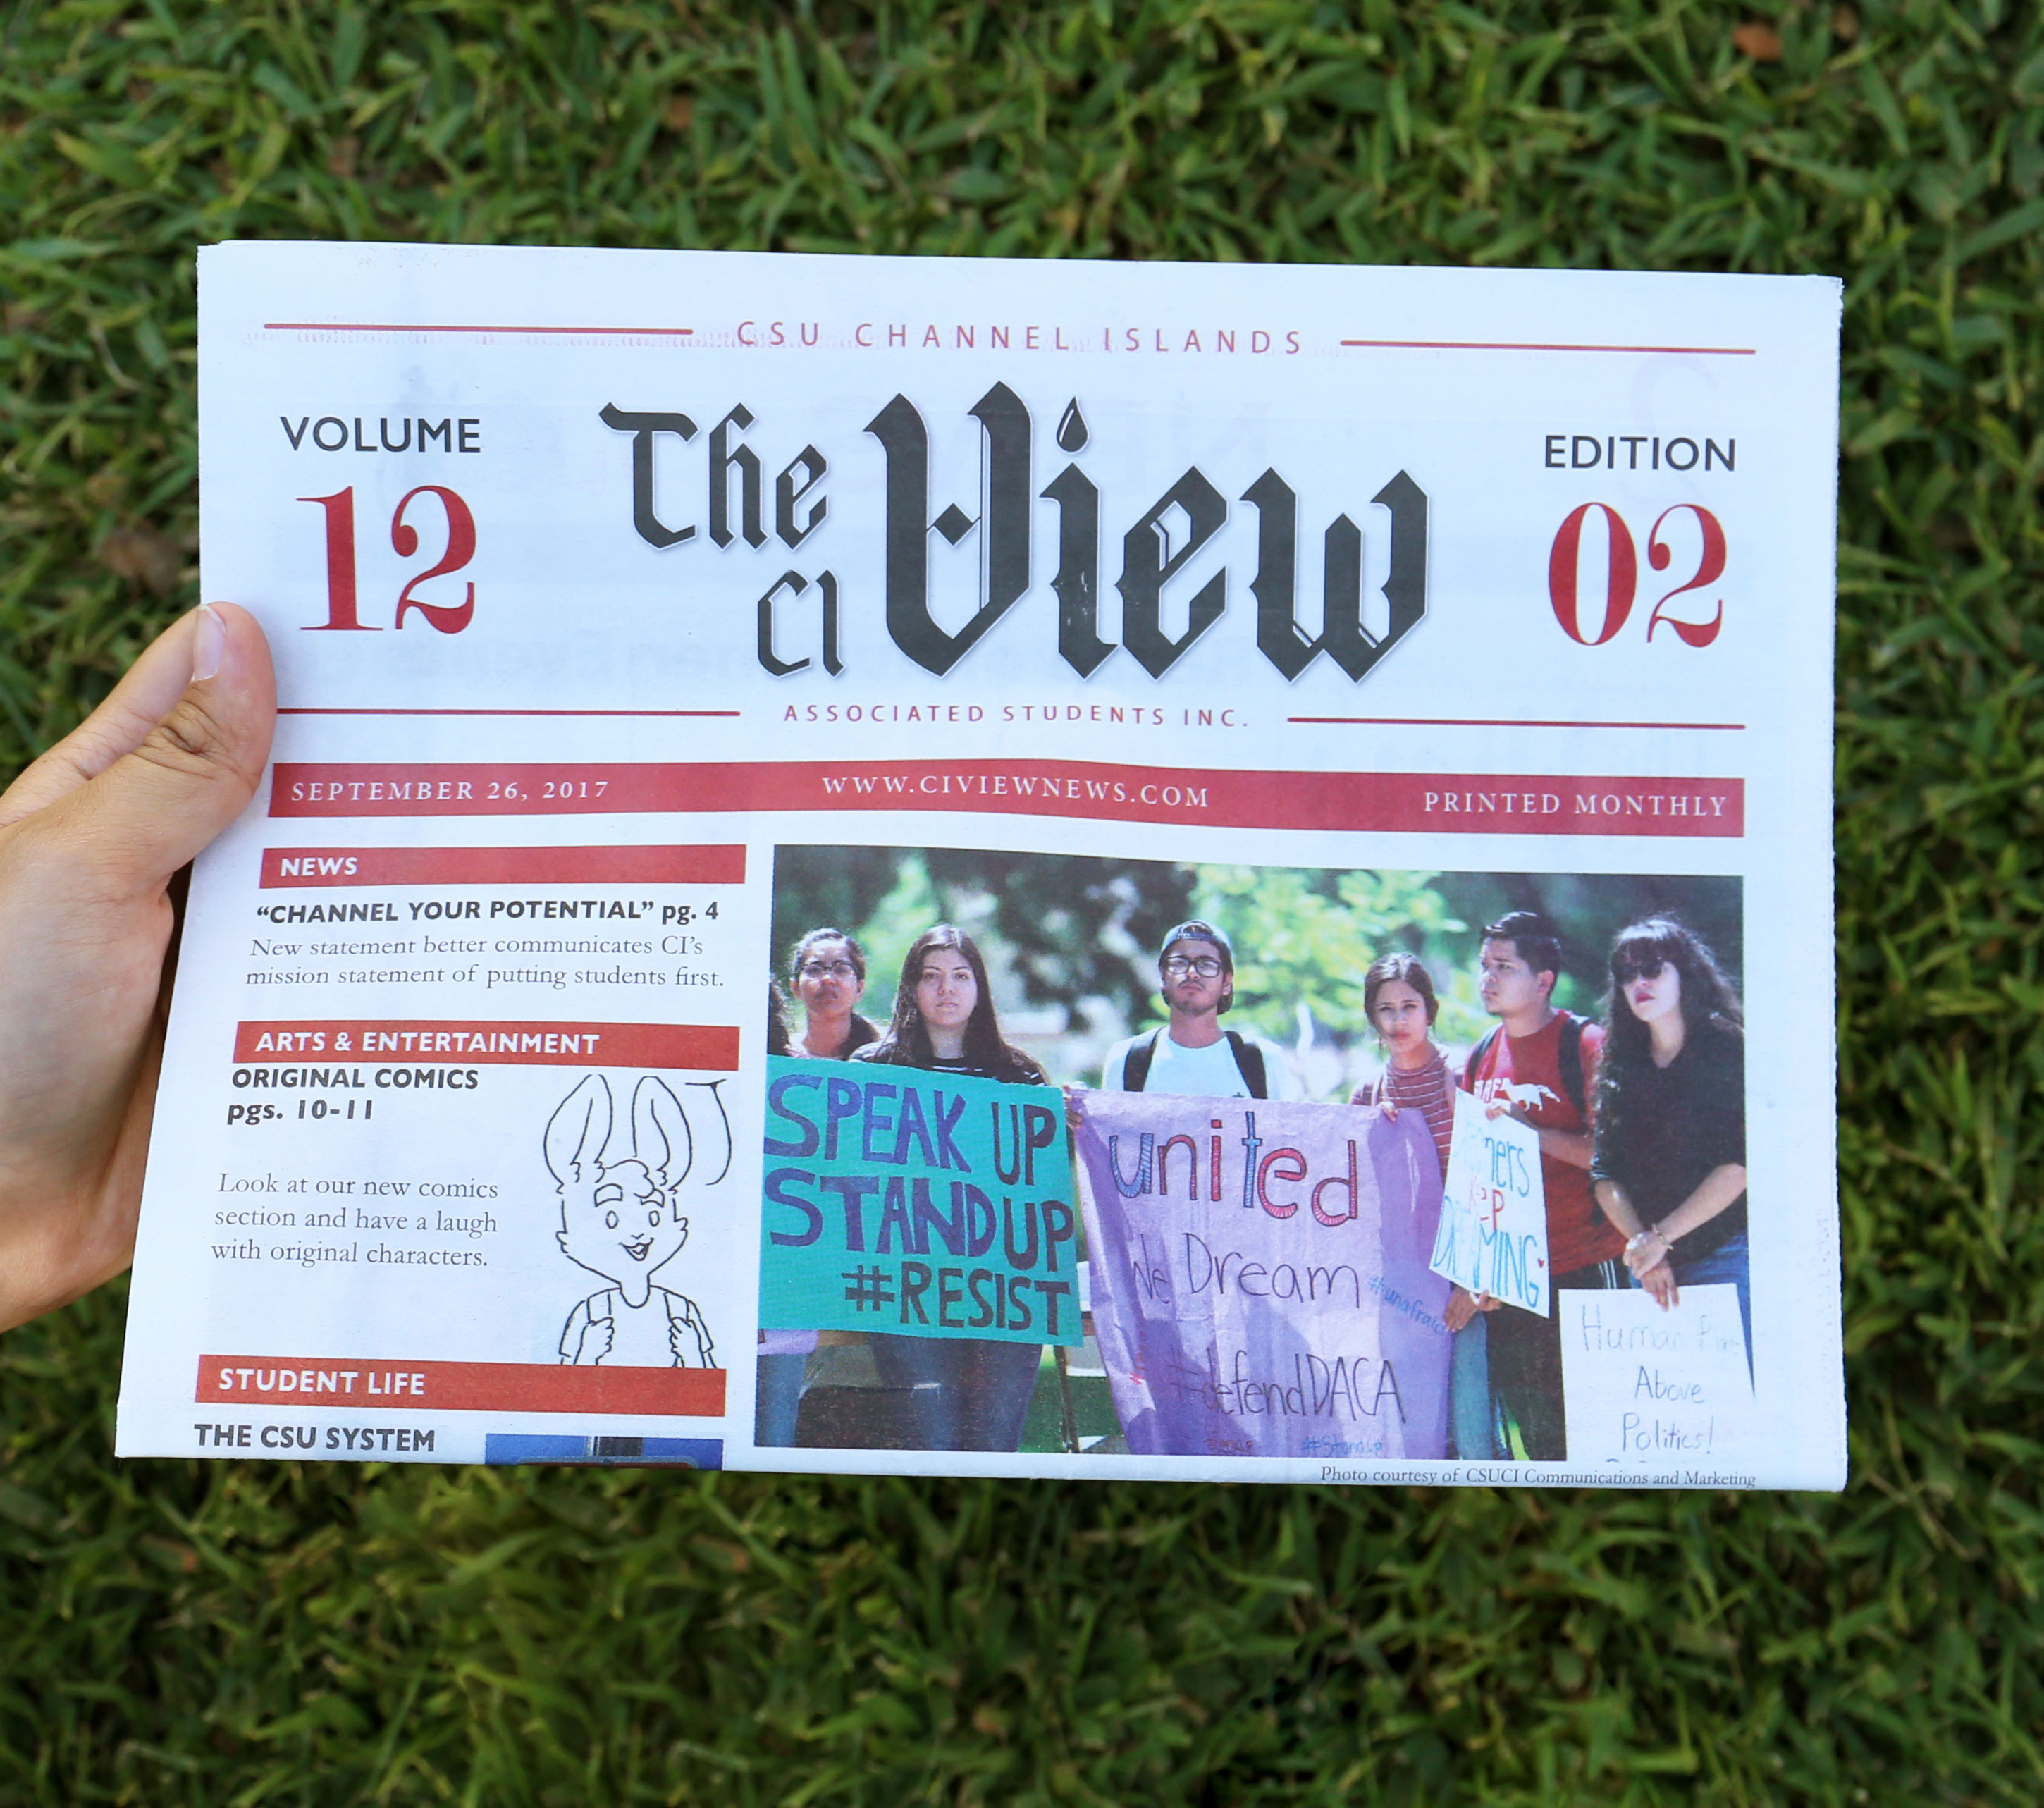 The CI View Issue 1